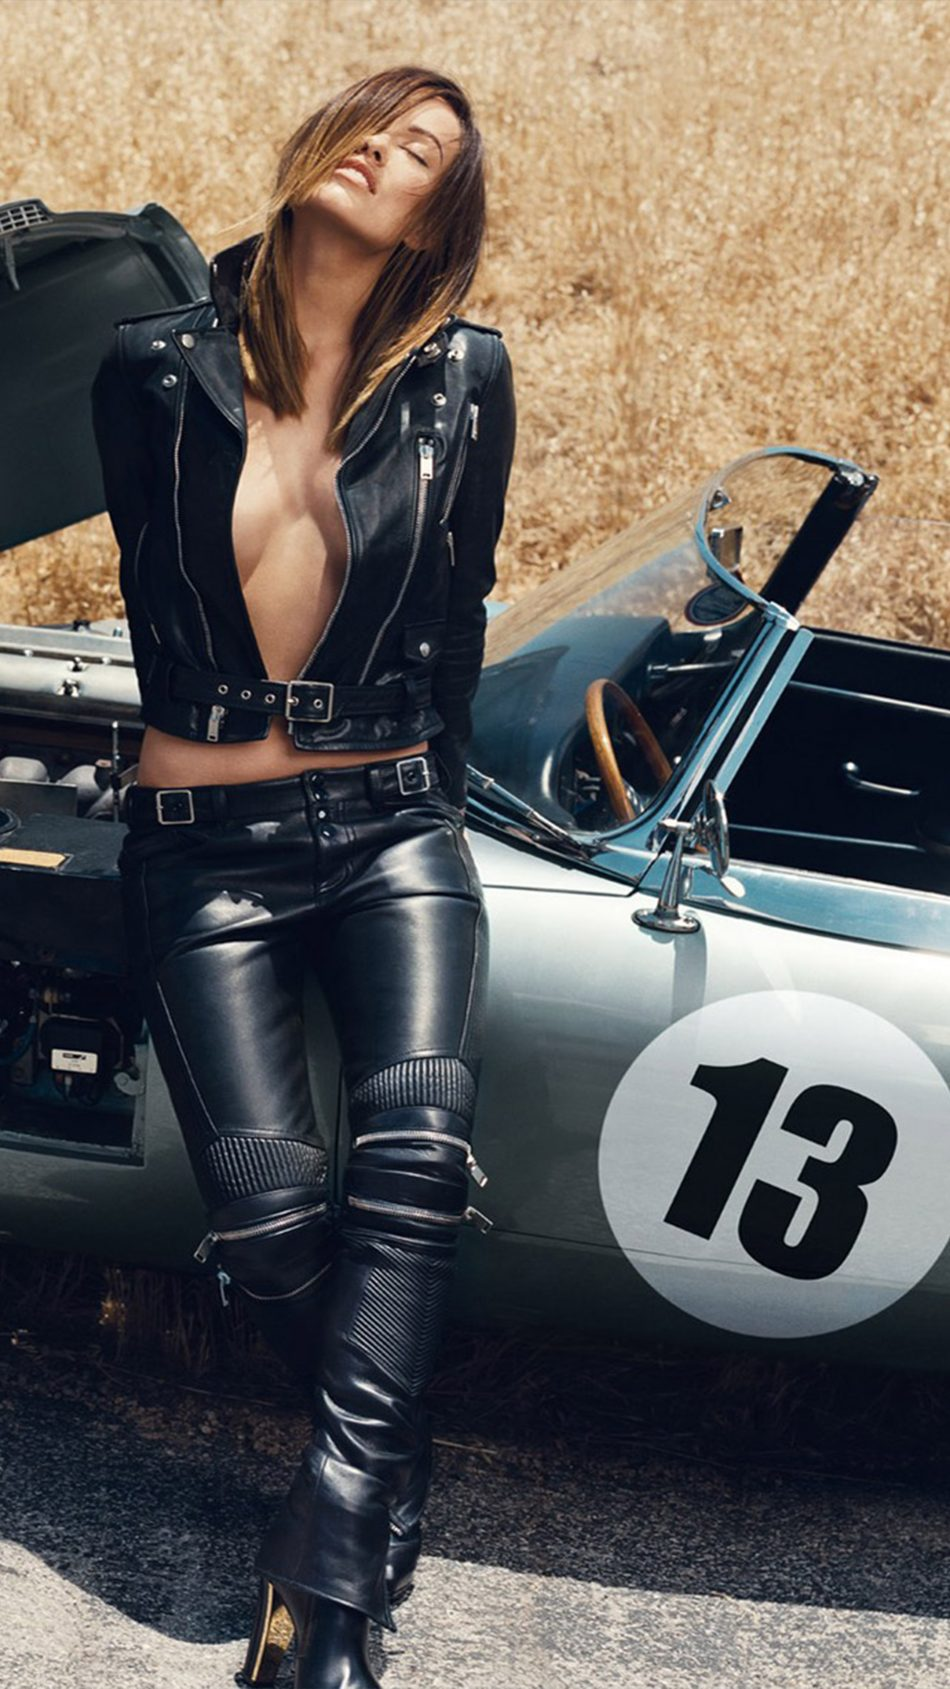 Download Olivia Wilde Hot Car Photoshoot Free Pure 4k Ultra Hd